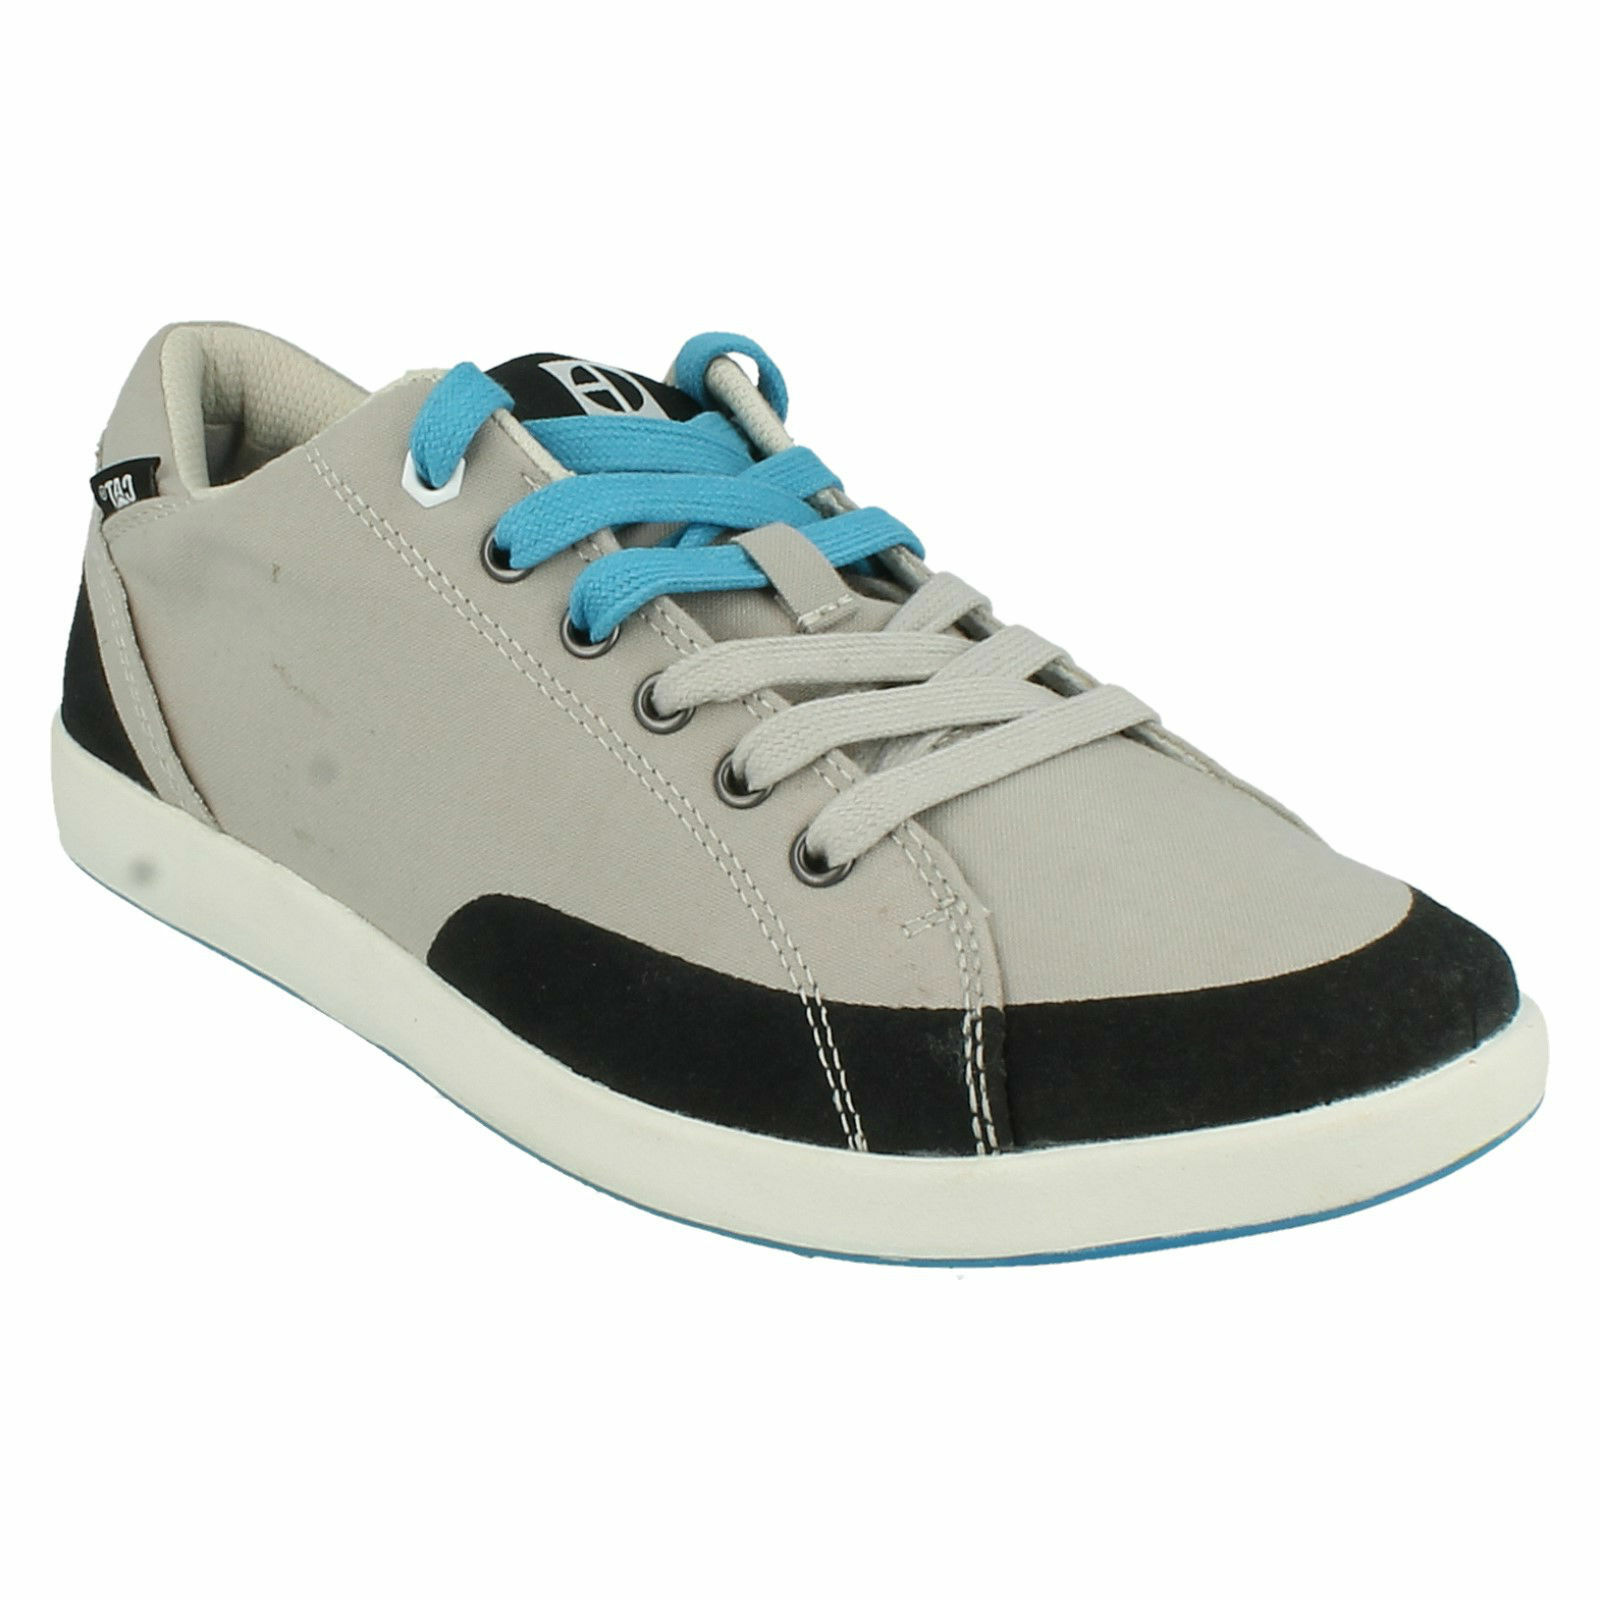 CATERPILLAR CENTRIC CANVAS MENS LACE UP CASUAL TRAINERS EVERYDAY SHOES P716108